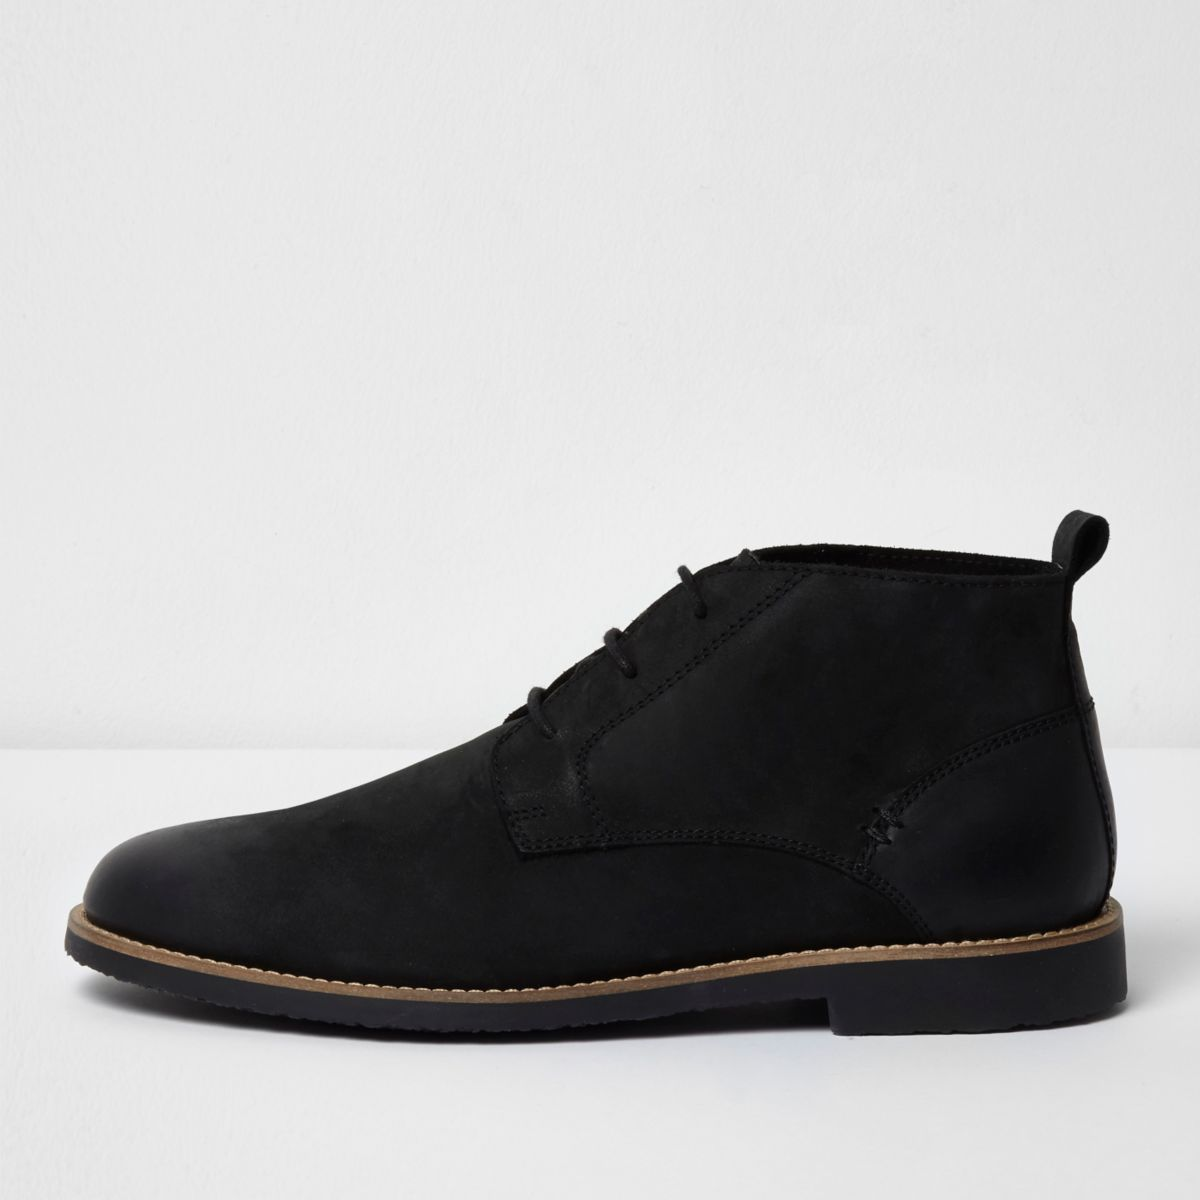 Black leather desert boots